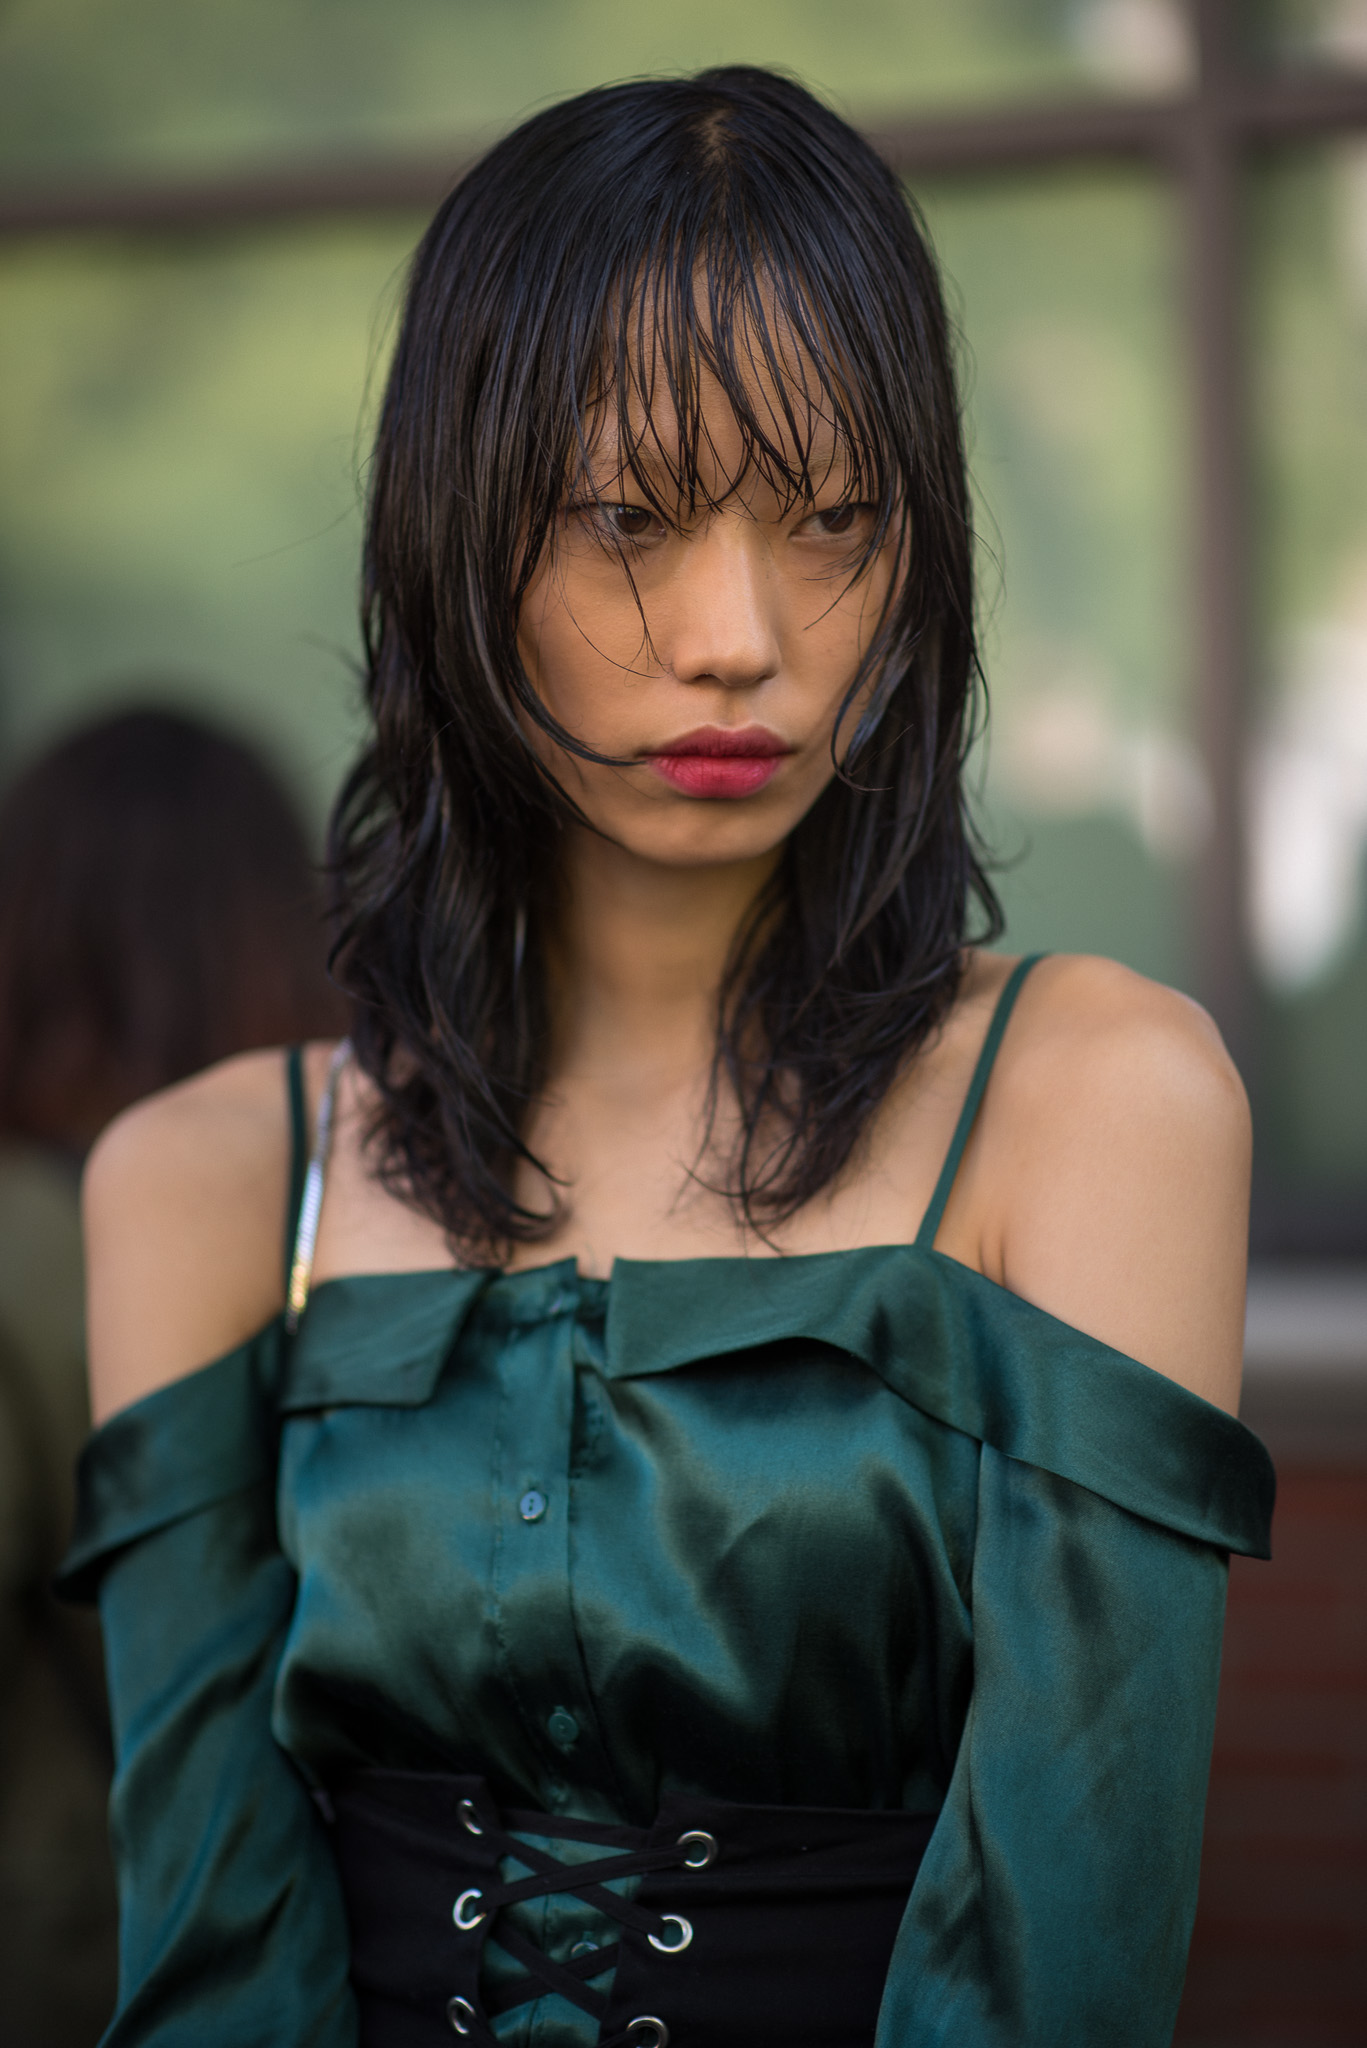 Sora Choi Models Off Duty Fendi Milan Fashion Week September 2017 Photography Annika Lagerqvist www.annikasomething.com